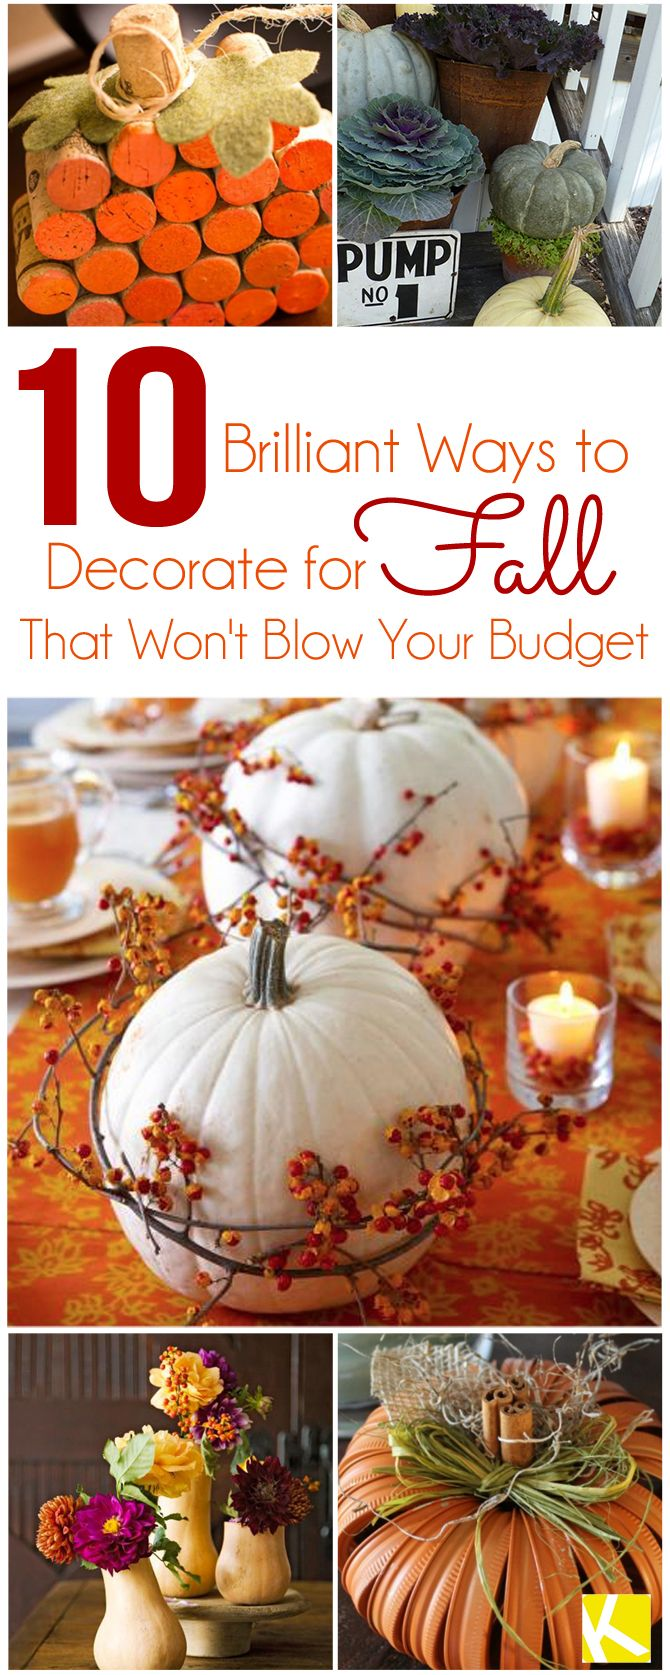 September Decorating Ideas Beauteous 10 Brilliant Ways To Decorate For Fall That Won't Blow Your Budget . 2017